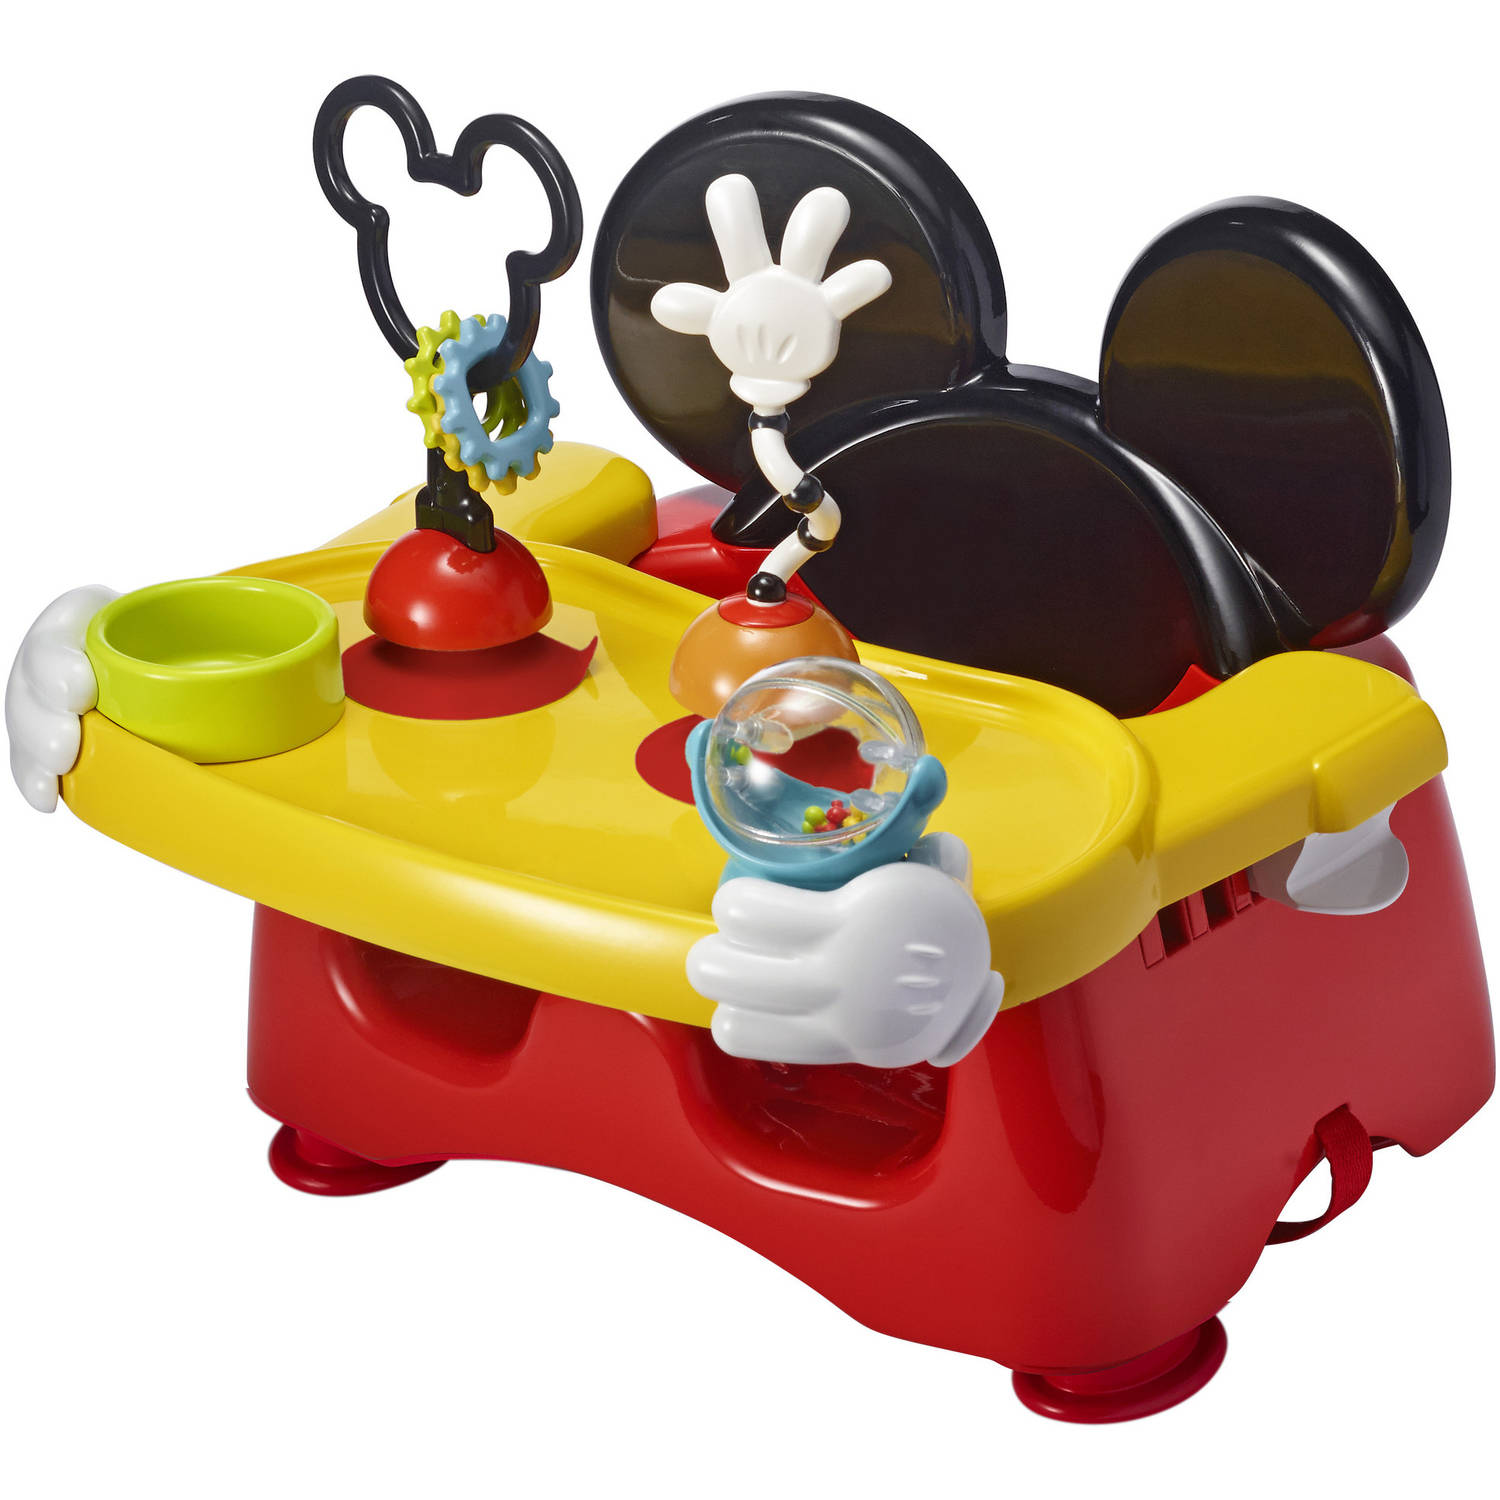 The First Years Disney Baby Mickey Mouse Helping Hands Feeding and Activity Seat